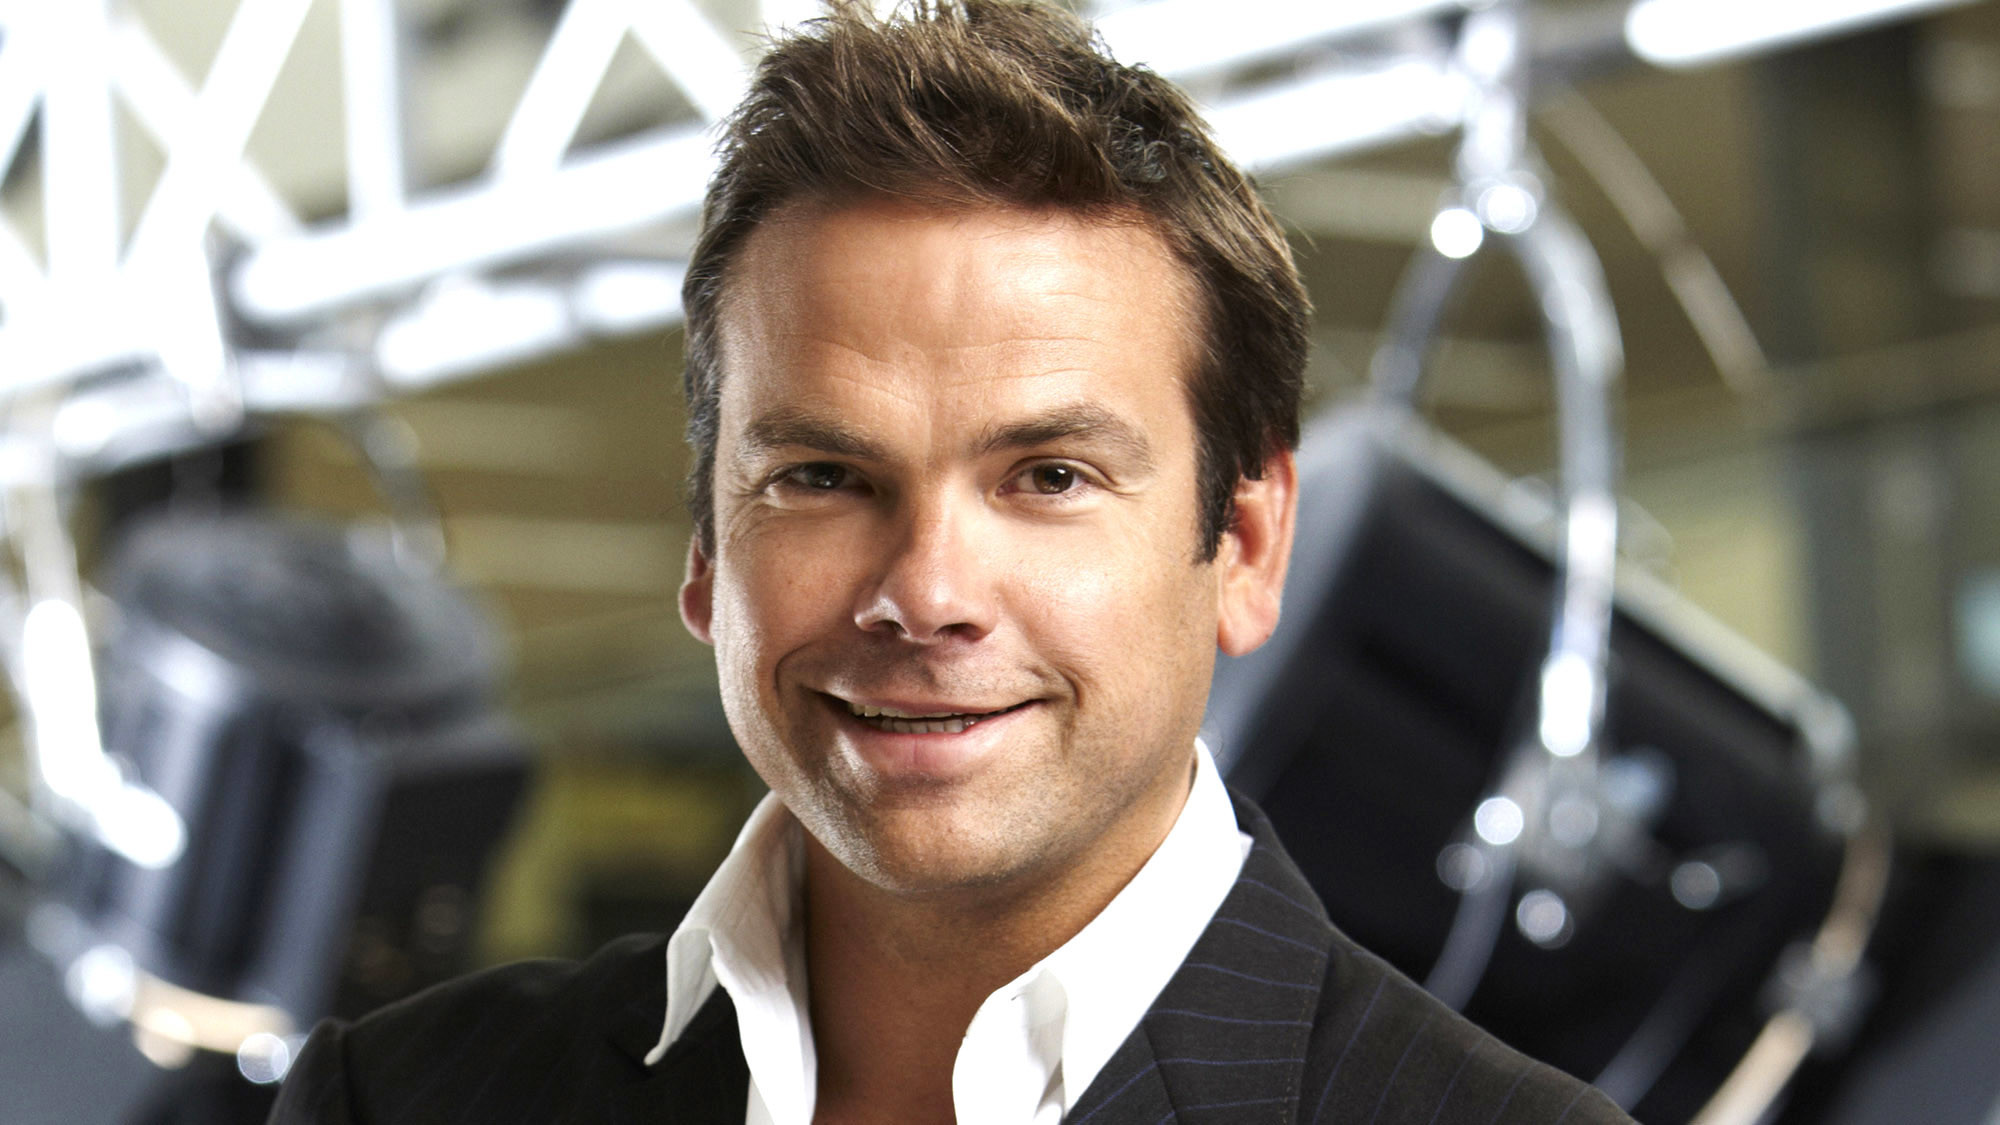 Lachlan Murdoch Executive Chairman of 21st Century Fox